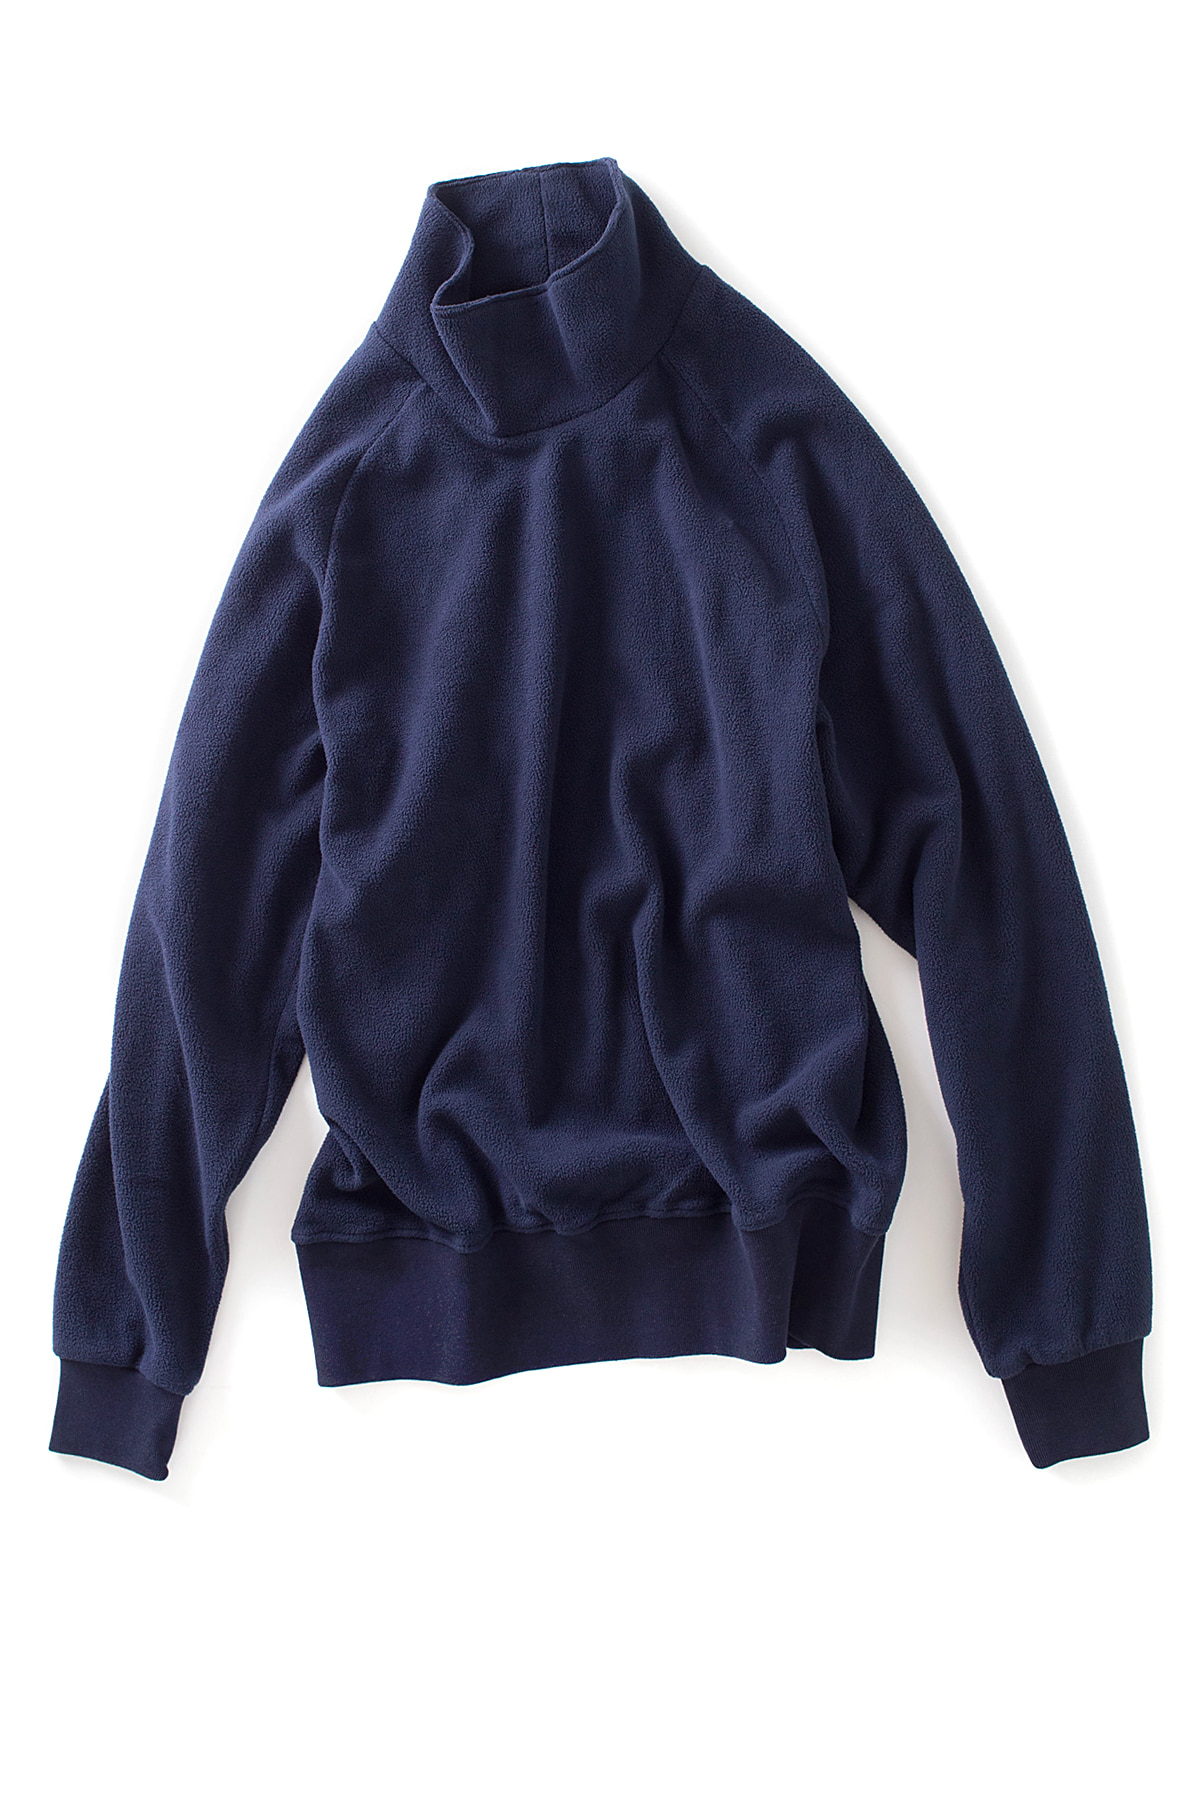 Document : Turtle Neck Jersey (Navy)